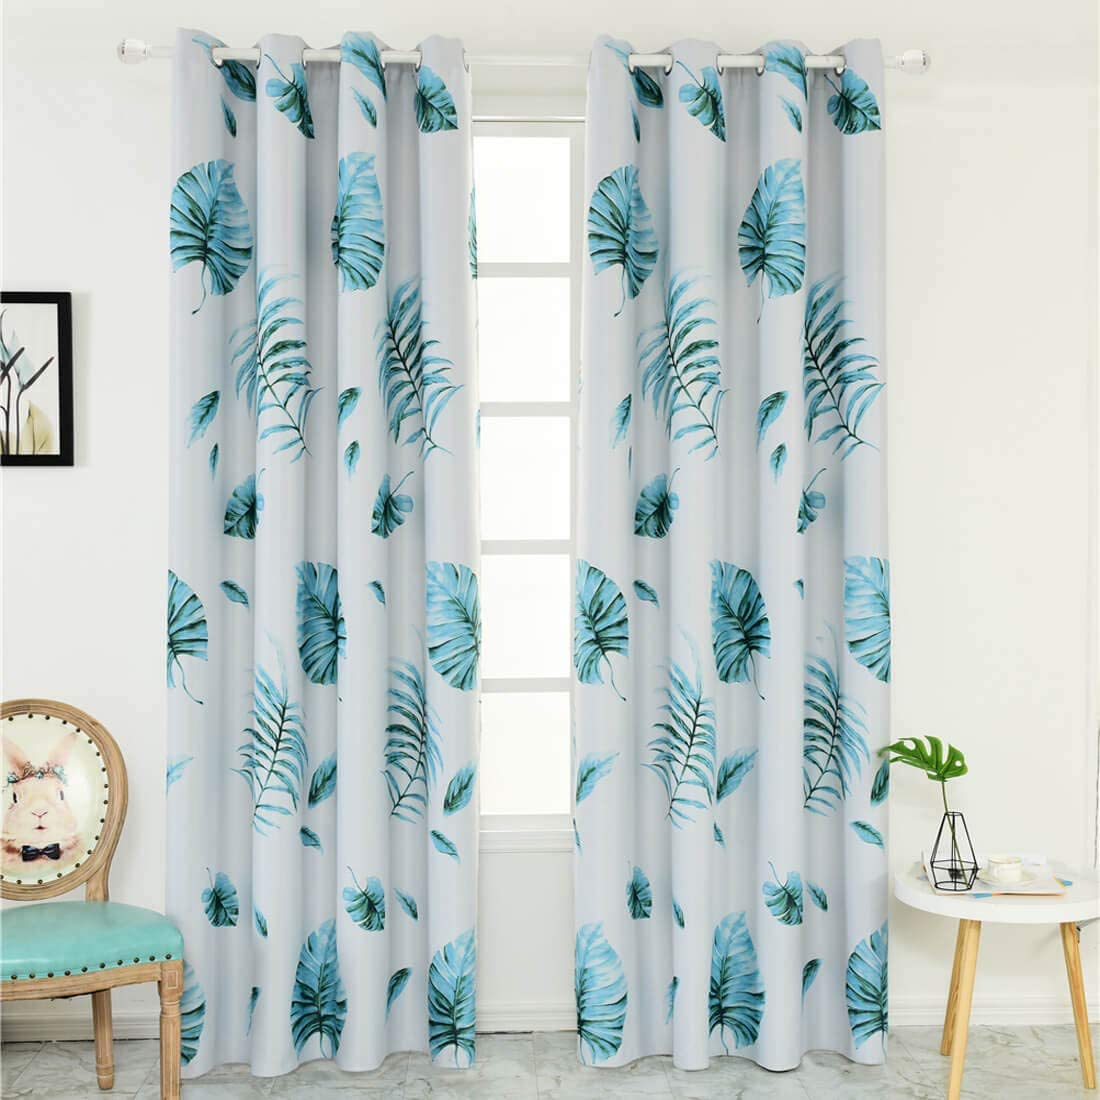 WUBODTI Leaf Blackout Window Door Curtains 2 Panels Room Darkening Thermal Insulated Window Treatments Grommet Drapes and Curtains for Bedroom Nursery Living Room 108 Inches Long,Tropical Banana Leaf